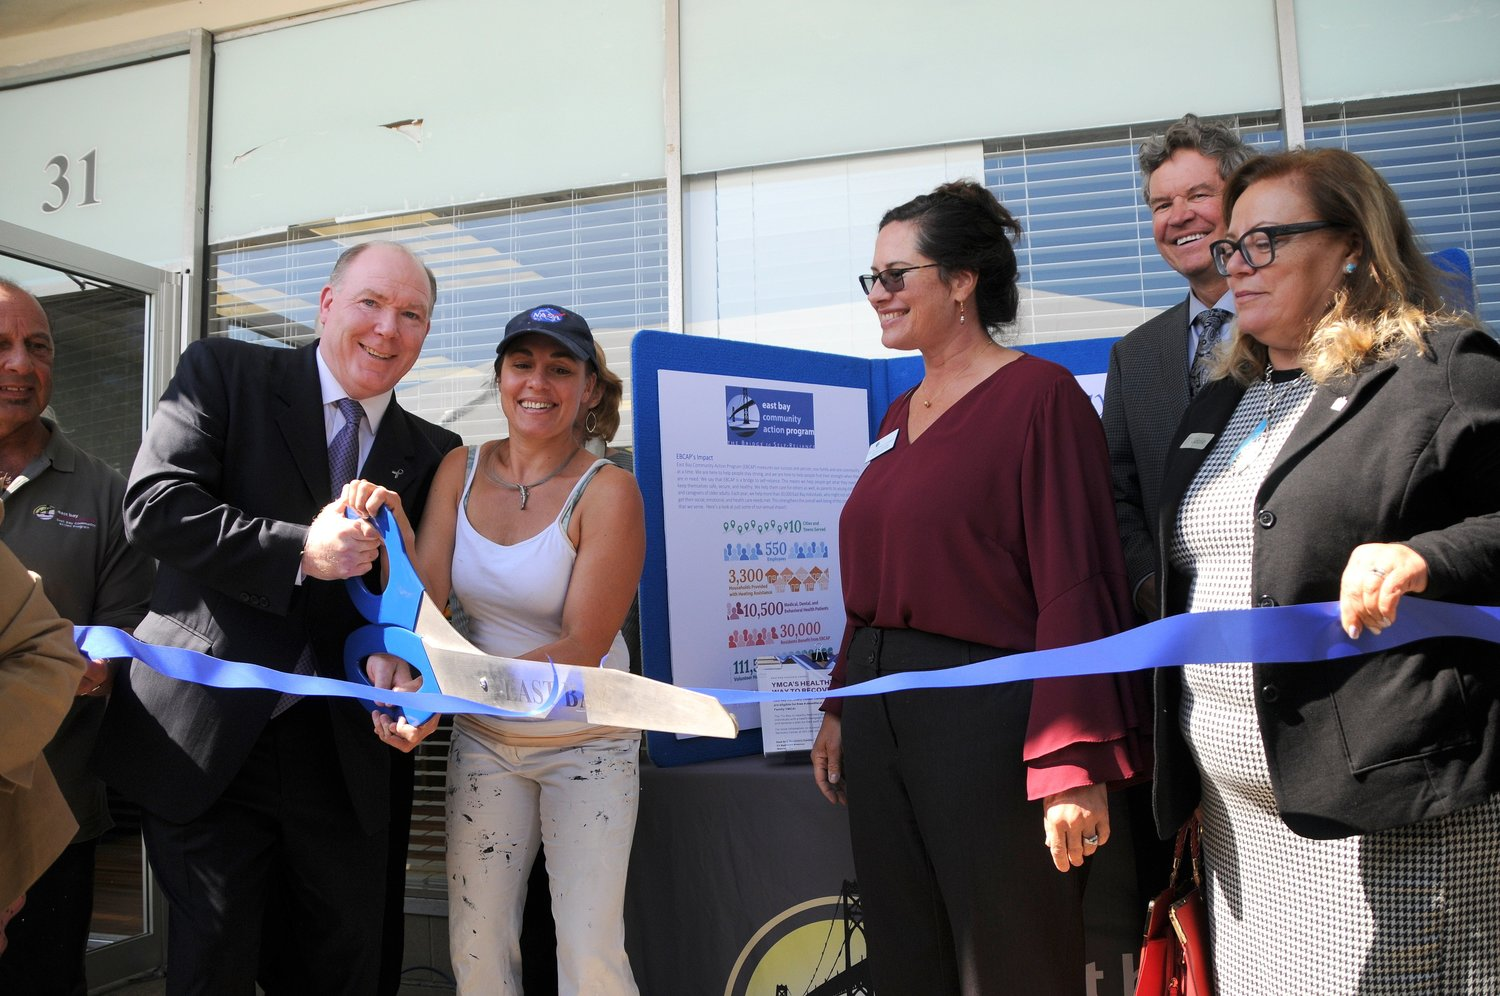 Thomas Joyce (second from left), East Bay Recovery Center director, helps with the cutting of the ribbon during ceremonies recently at the Railroad Avenue facility in Warren.